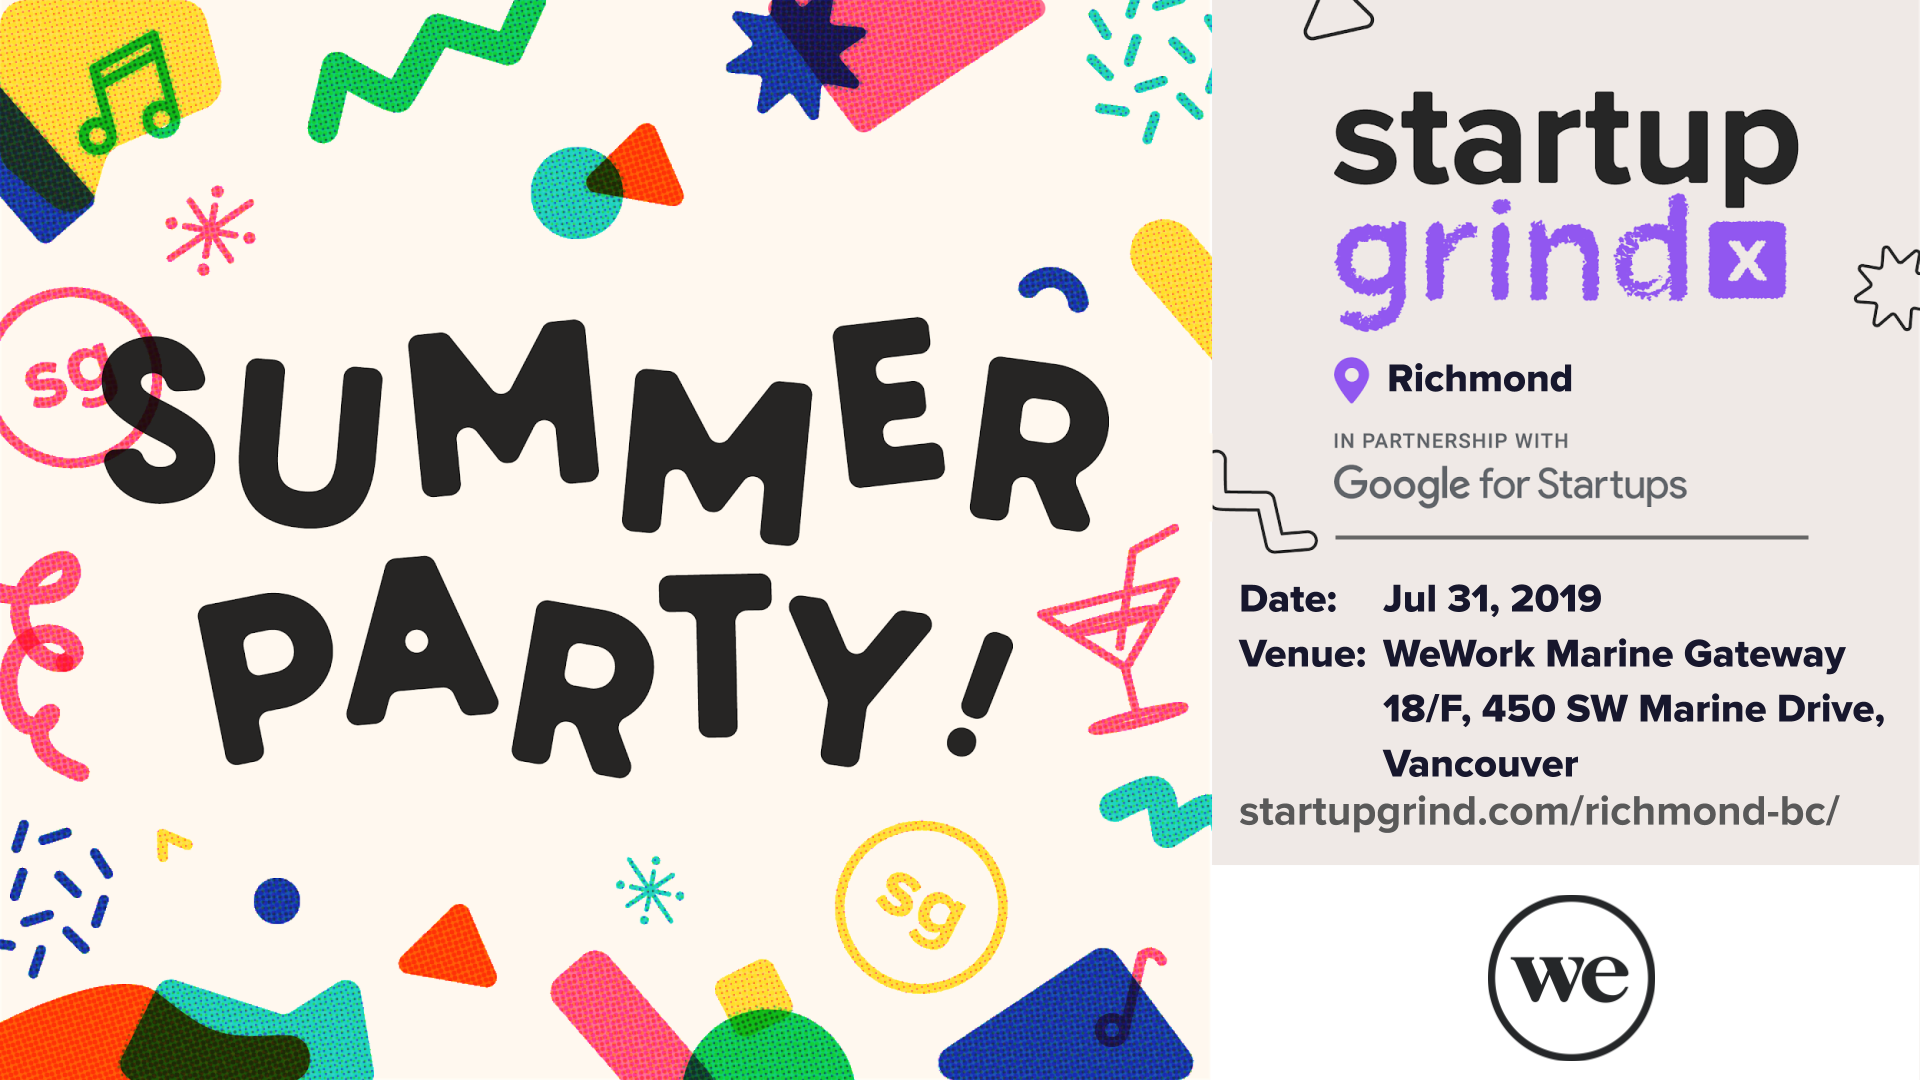 Startup Grind Summer Party + Door Prize - 2 tickets to Startup Grind 2020  Global Conference in Silicon Valley